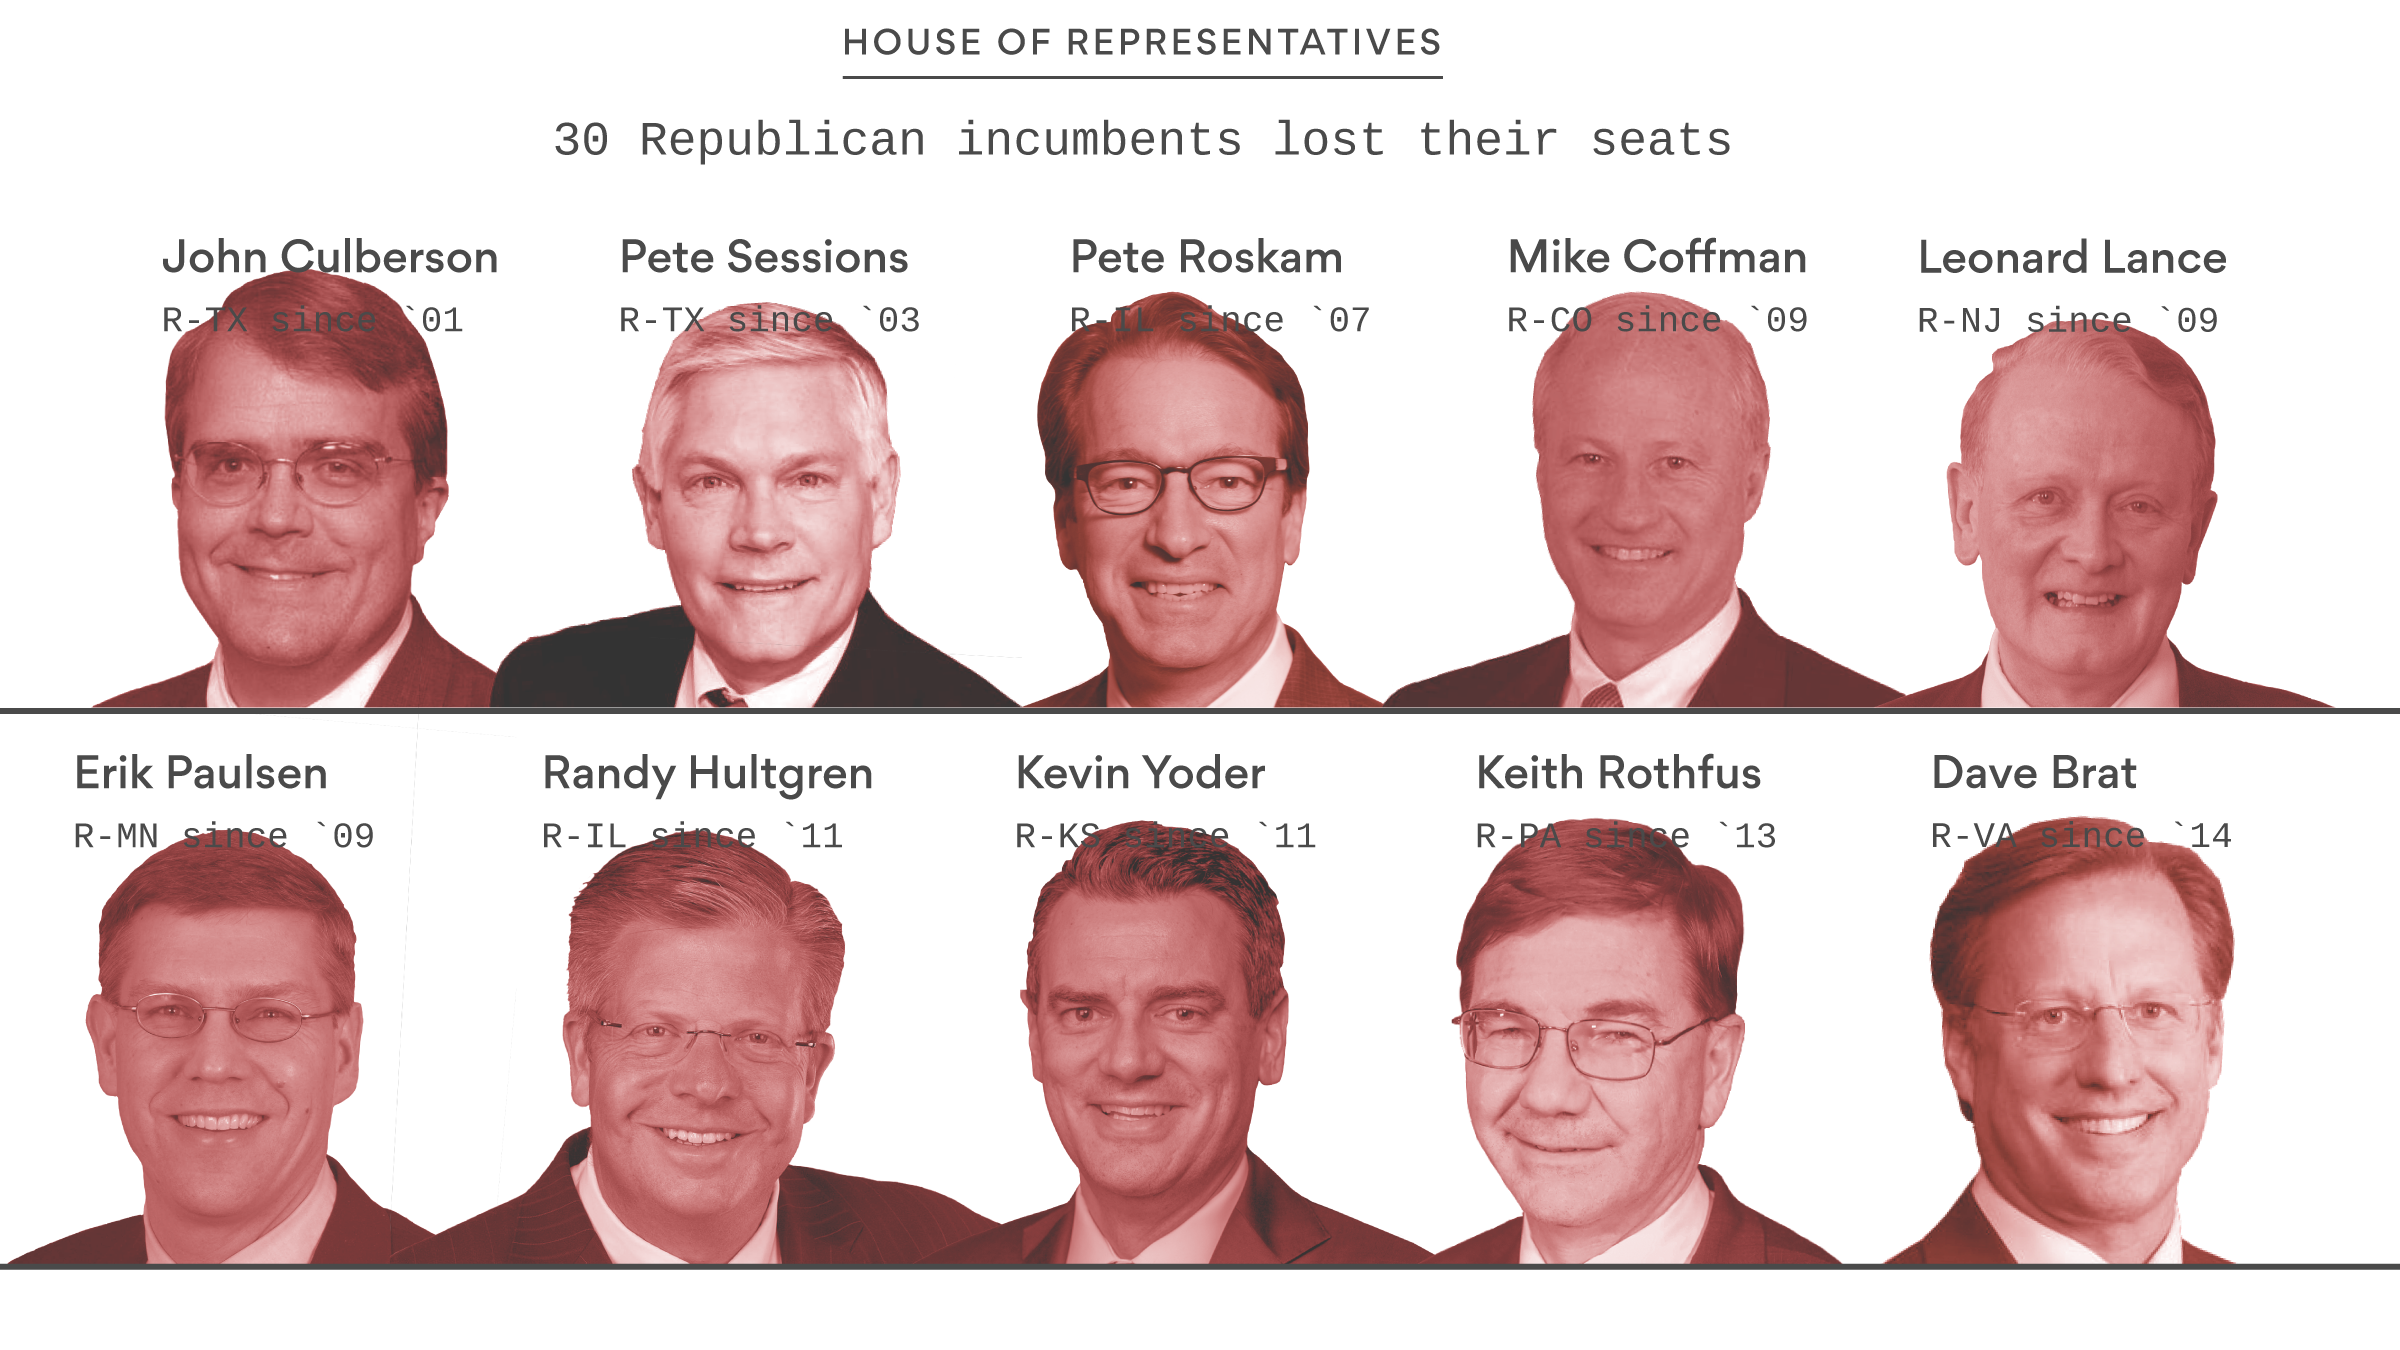 5. The incumbents who lost in 2018 - Axios